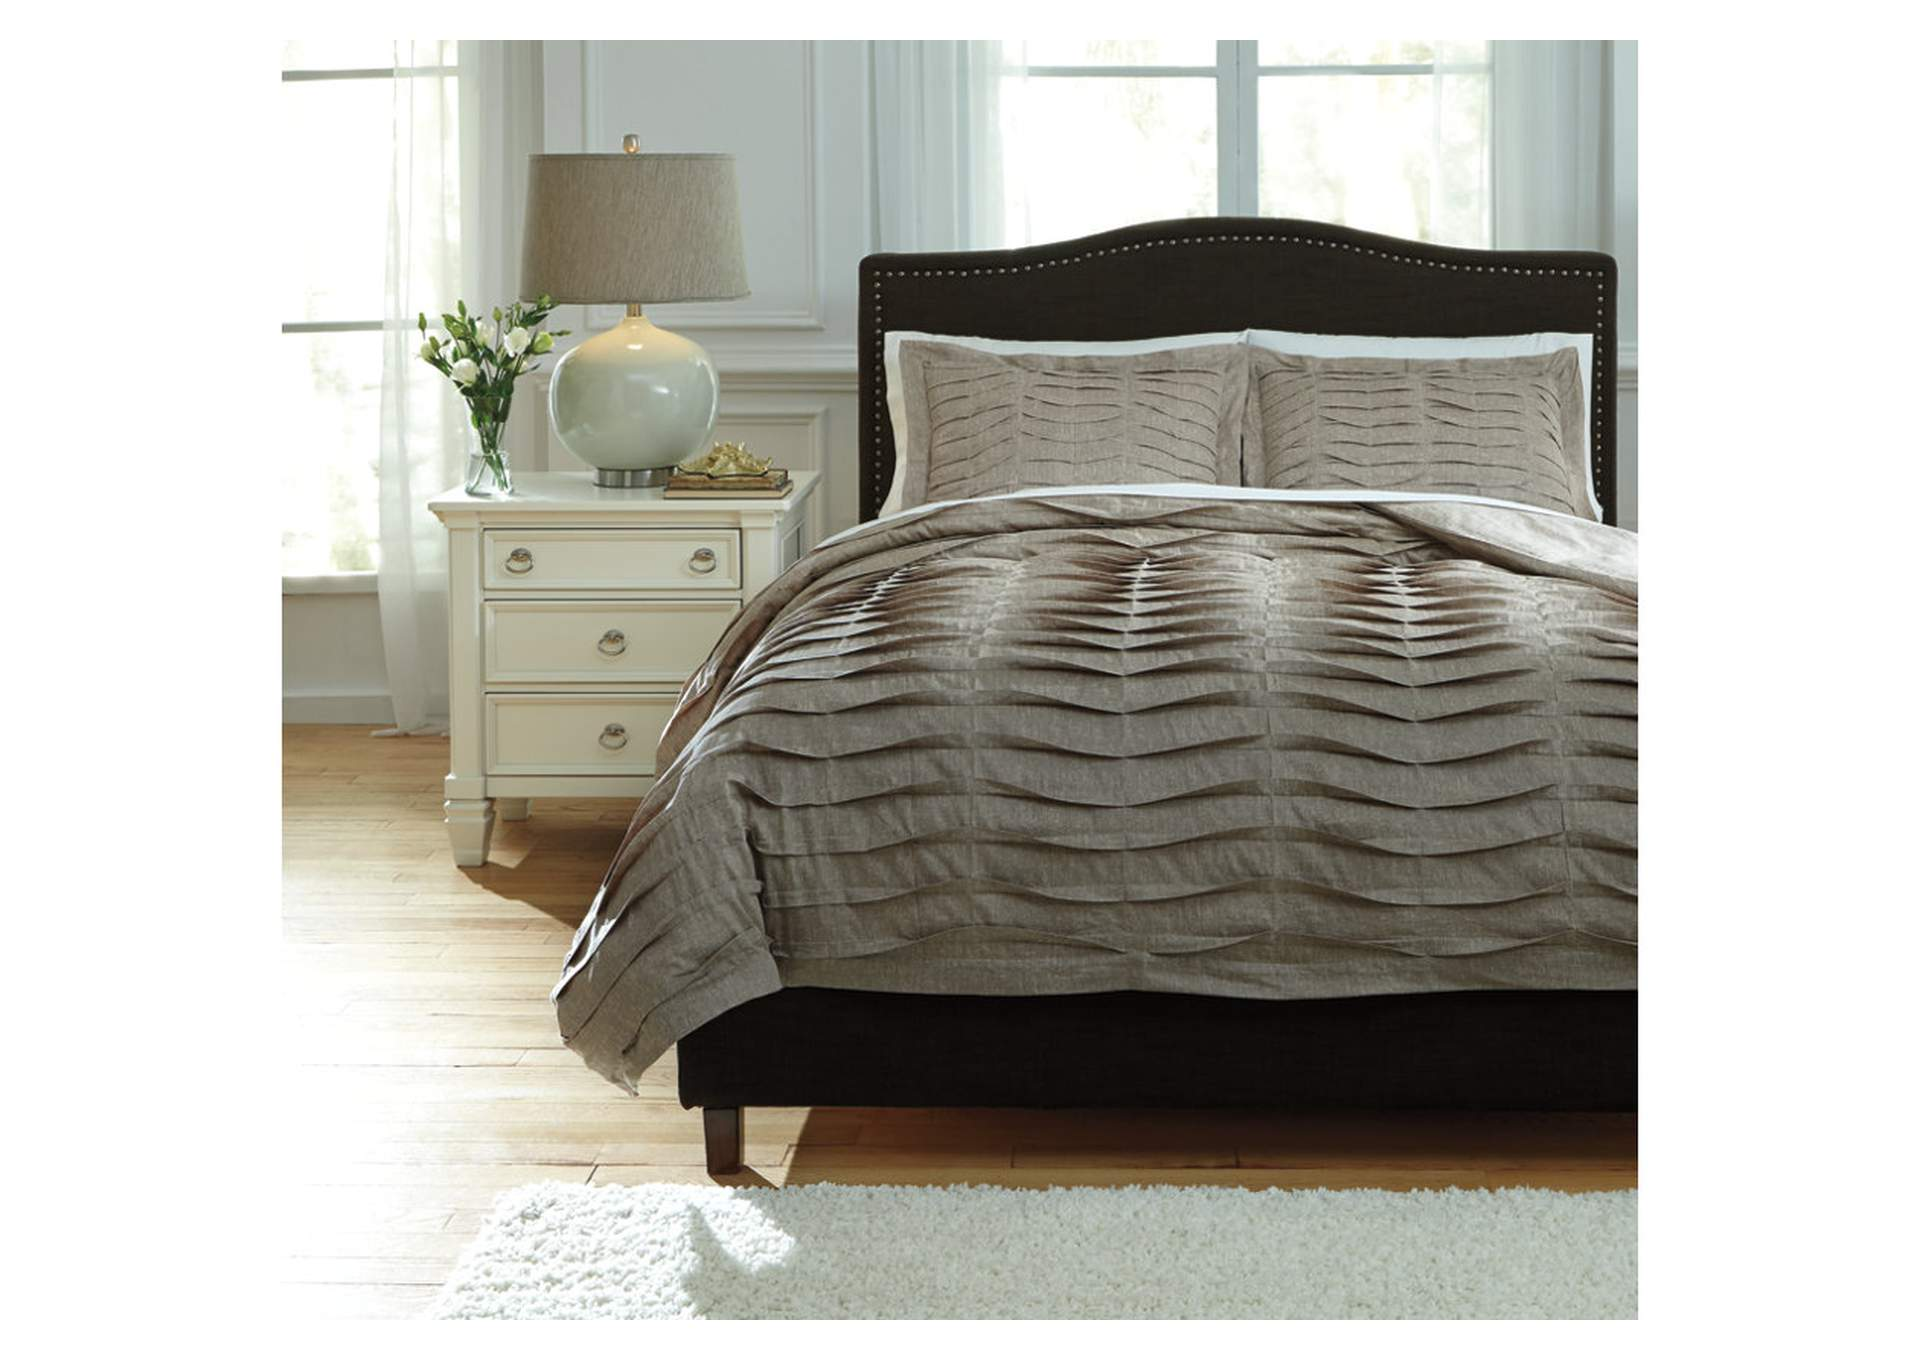 Voltos Brown Queen Duvet Cover Set,Signature Design By Ashley